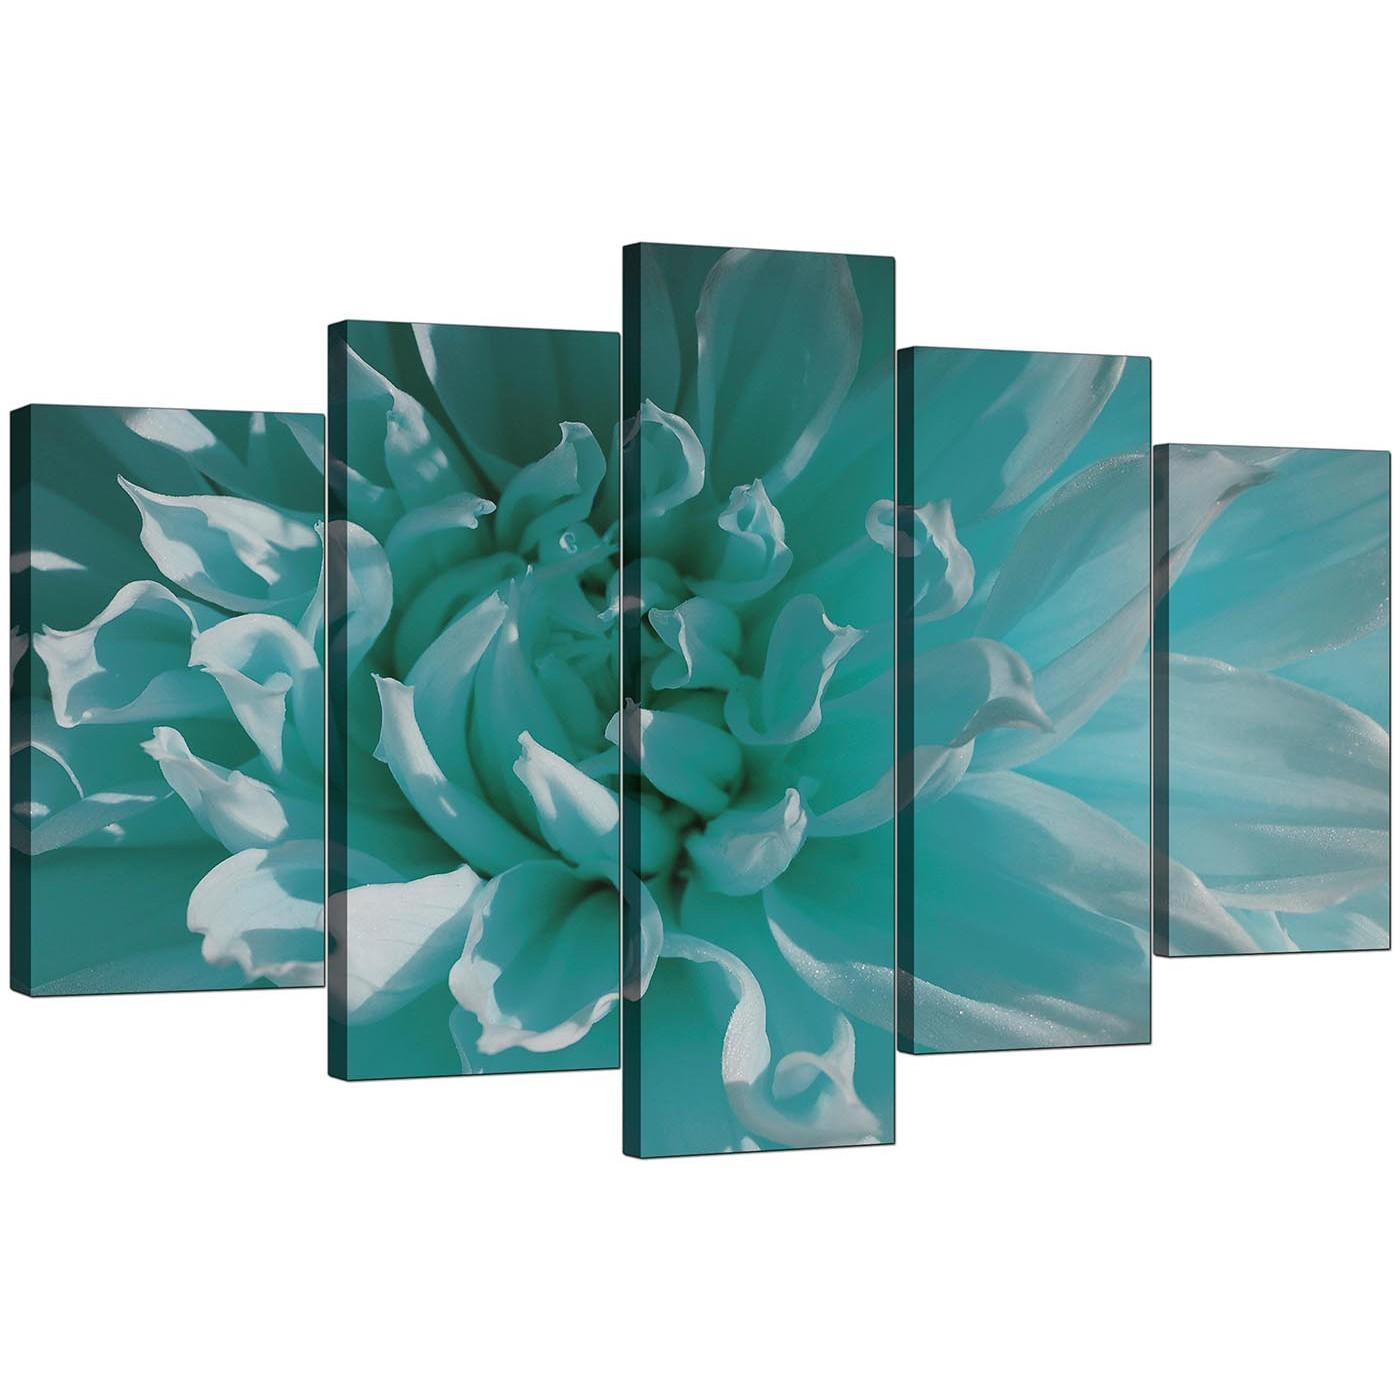 Extra Large Flower Canvas Wall Art 5 Piece In Teal Within Teal Flower Canvas Wall Art (Image 12 of 20)